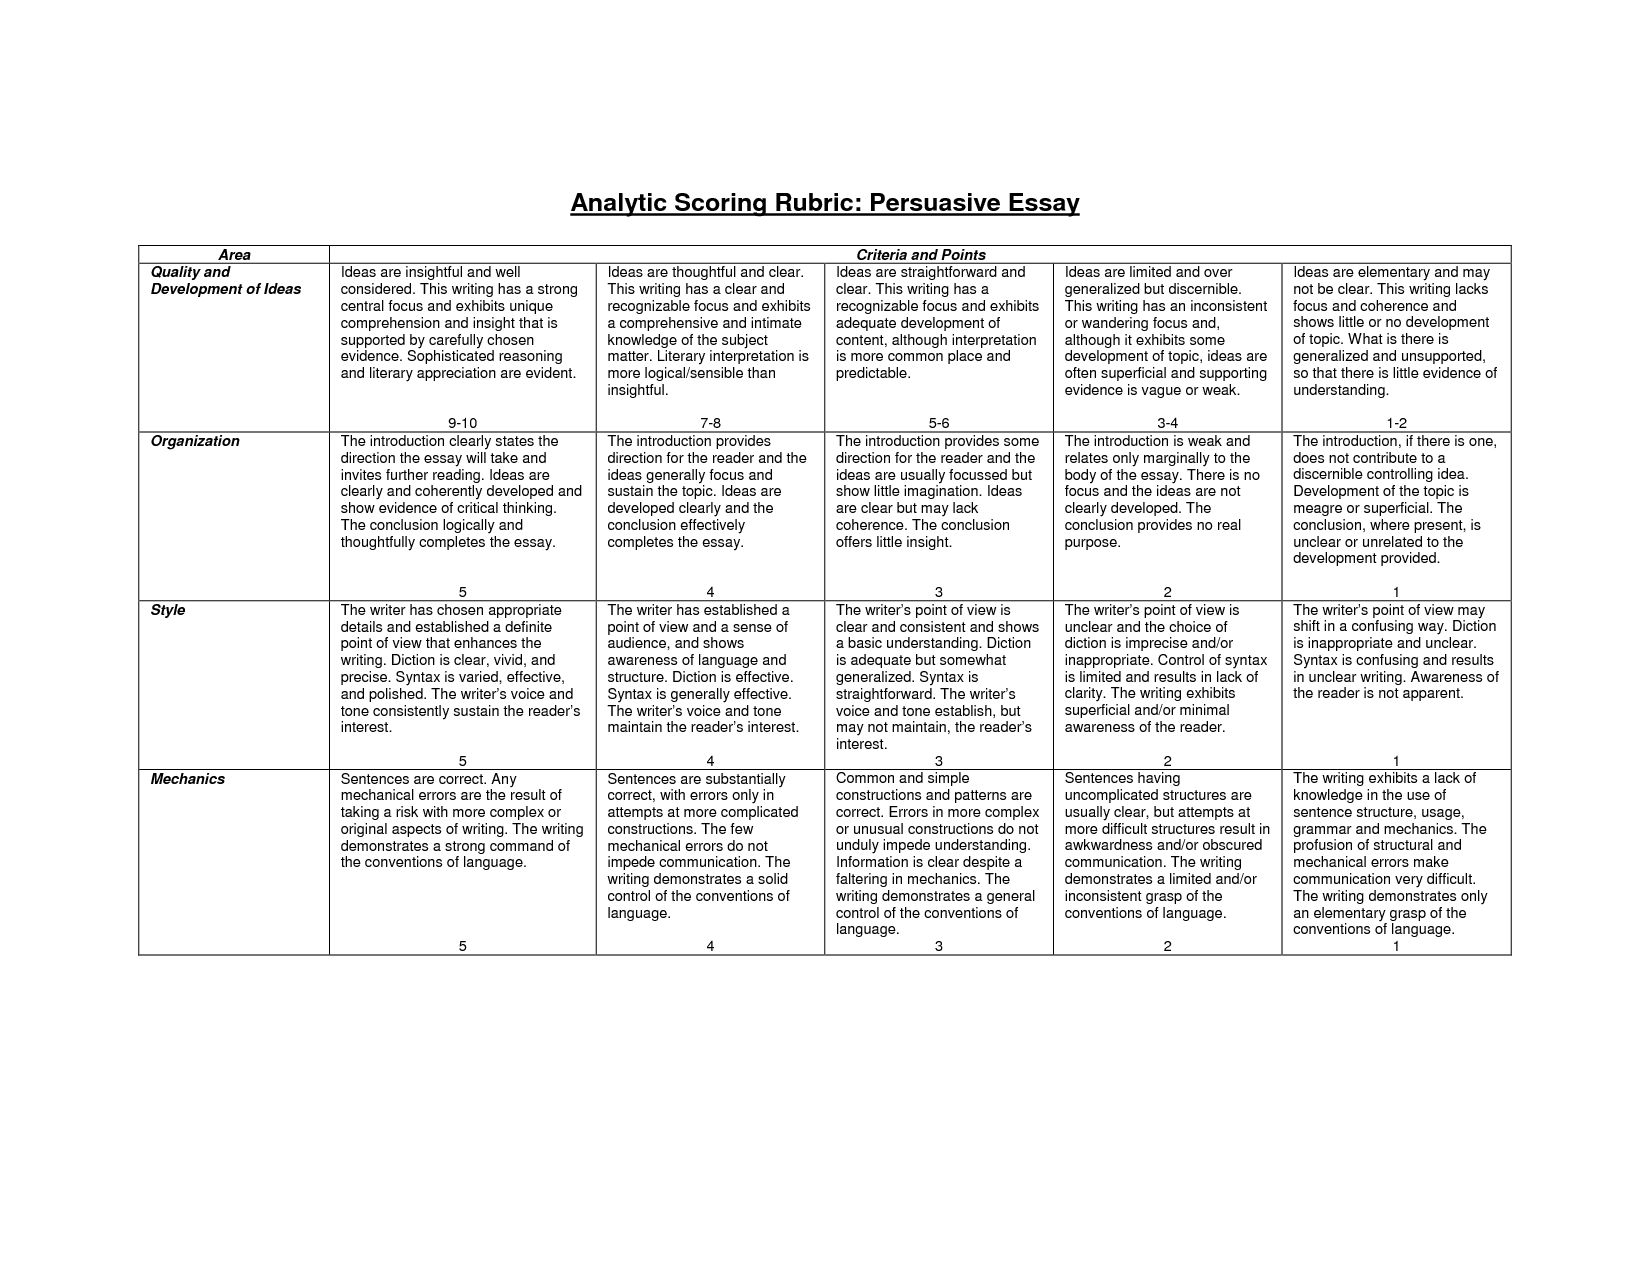 rubrics for college essay writing Rubric for assessment of the personal essay (maximum of 15 points for each essay) 3 2 1 0 introduction background/history thesis statement conclusion well-developed introduction engages the reader and creates interest contains detailed background information thesis clearly states a significant and compelling position or.